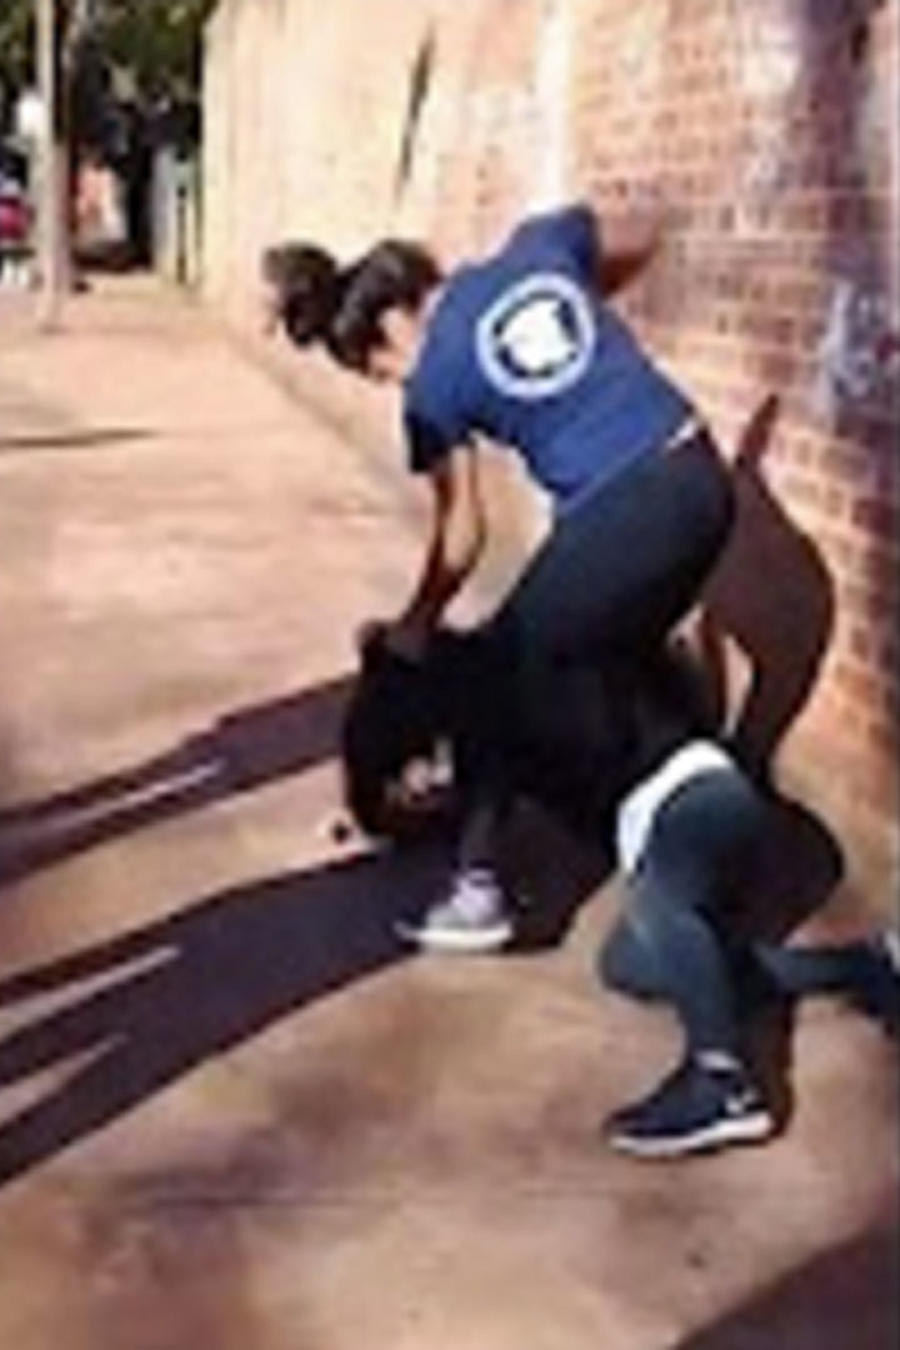 Dos estudiantes se encienden a golpes (VIDEO)